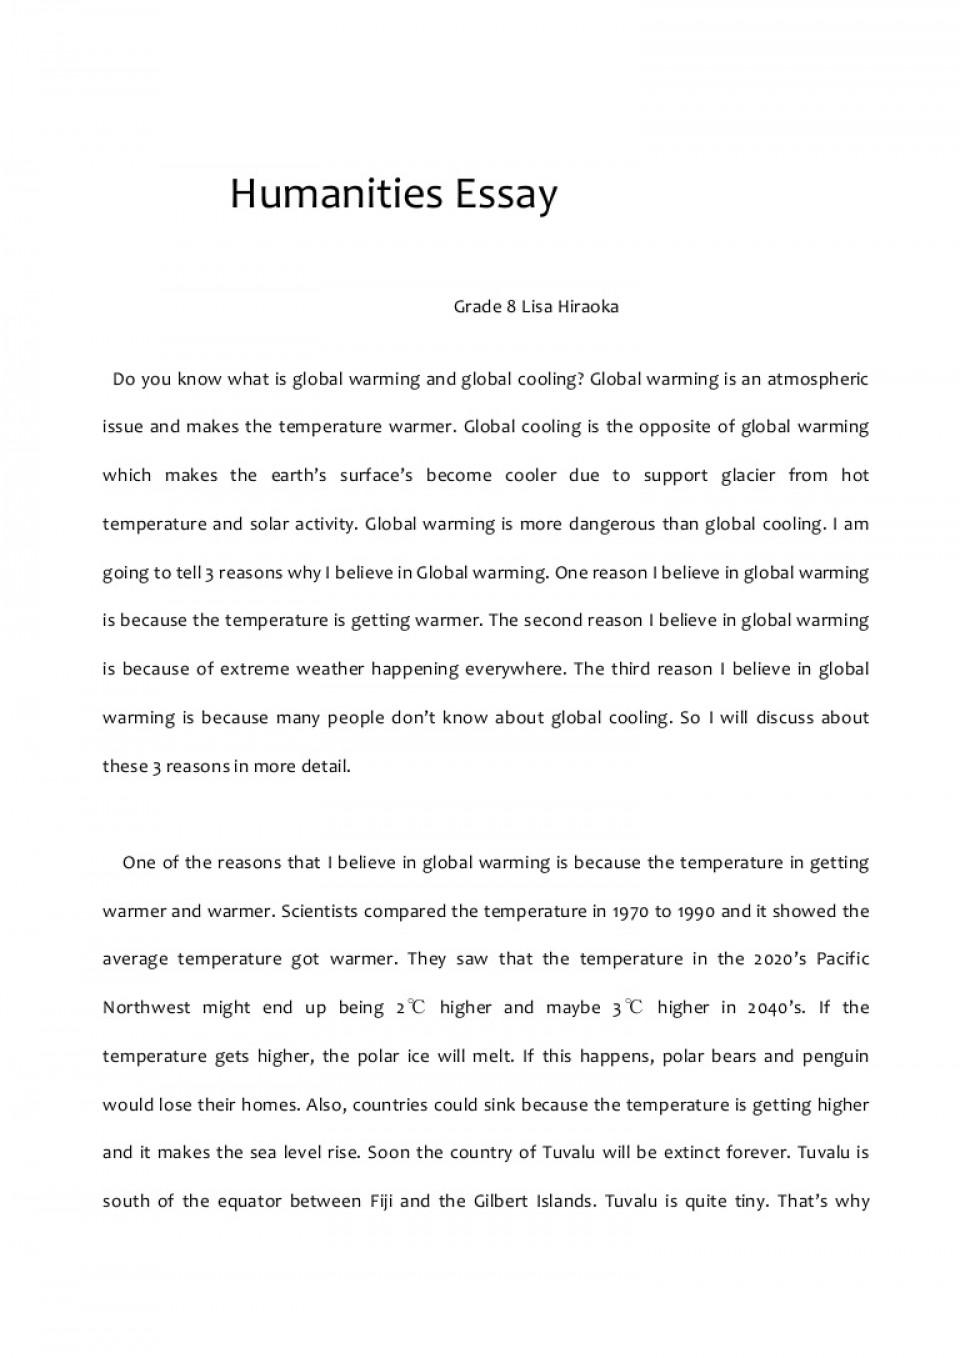 012 This I Believe Essay Topics Example Best Narrative Samples Humanitiesessay Phpapp02 Thumbn Good Fearsome Funny Prompt 960